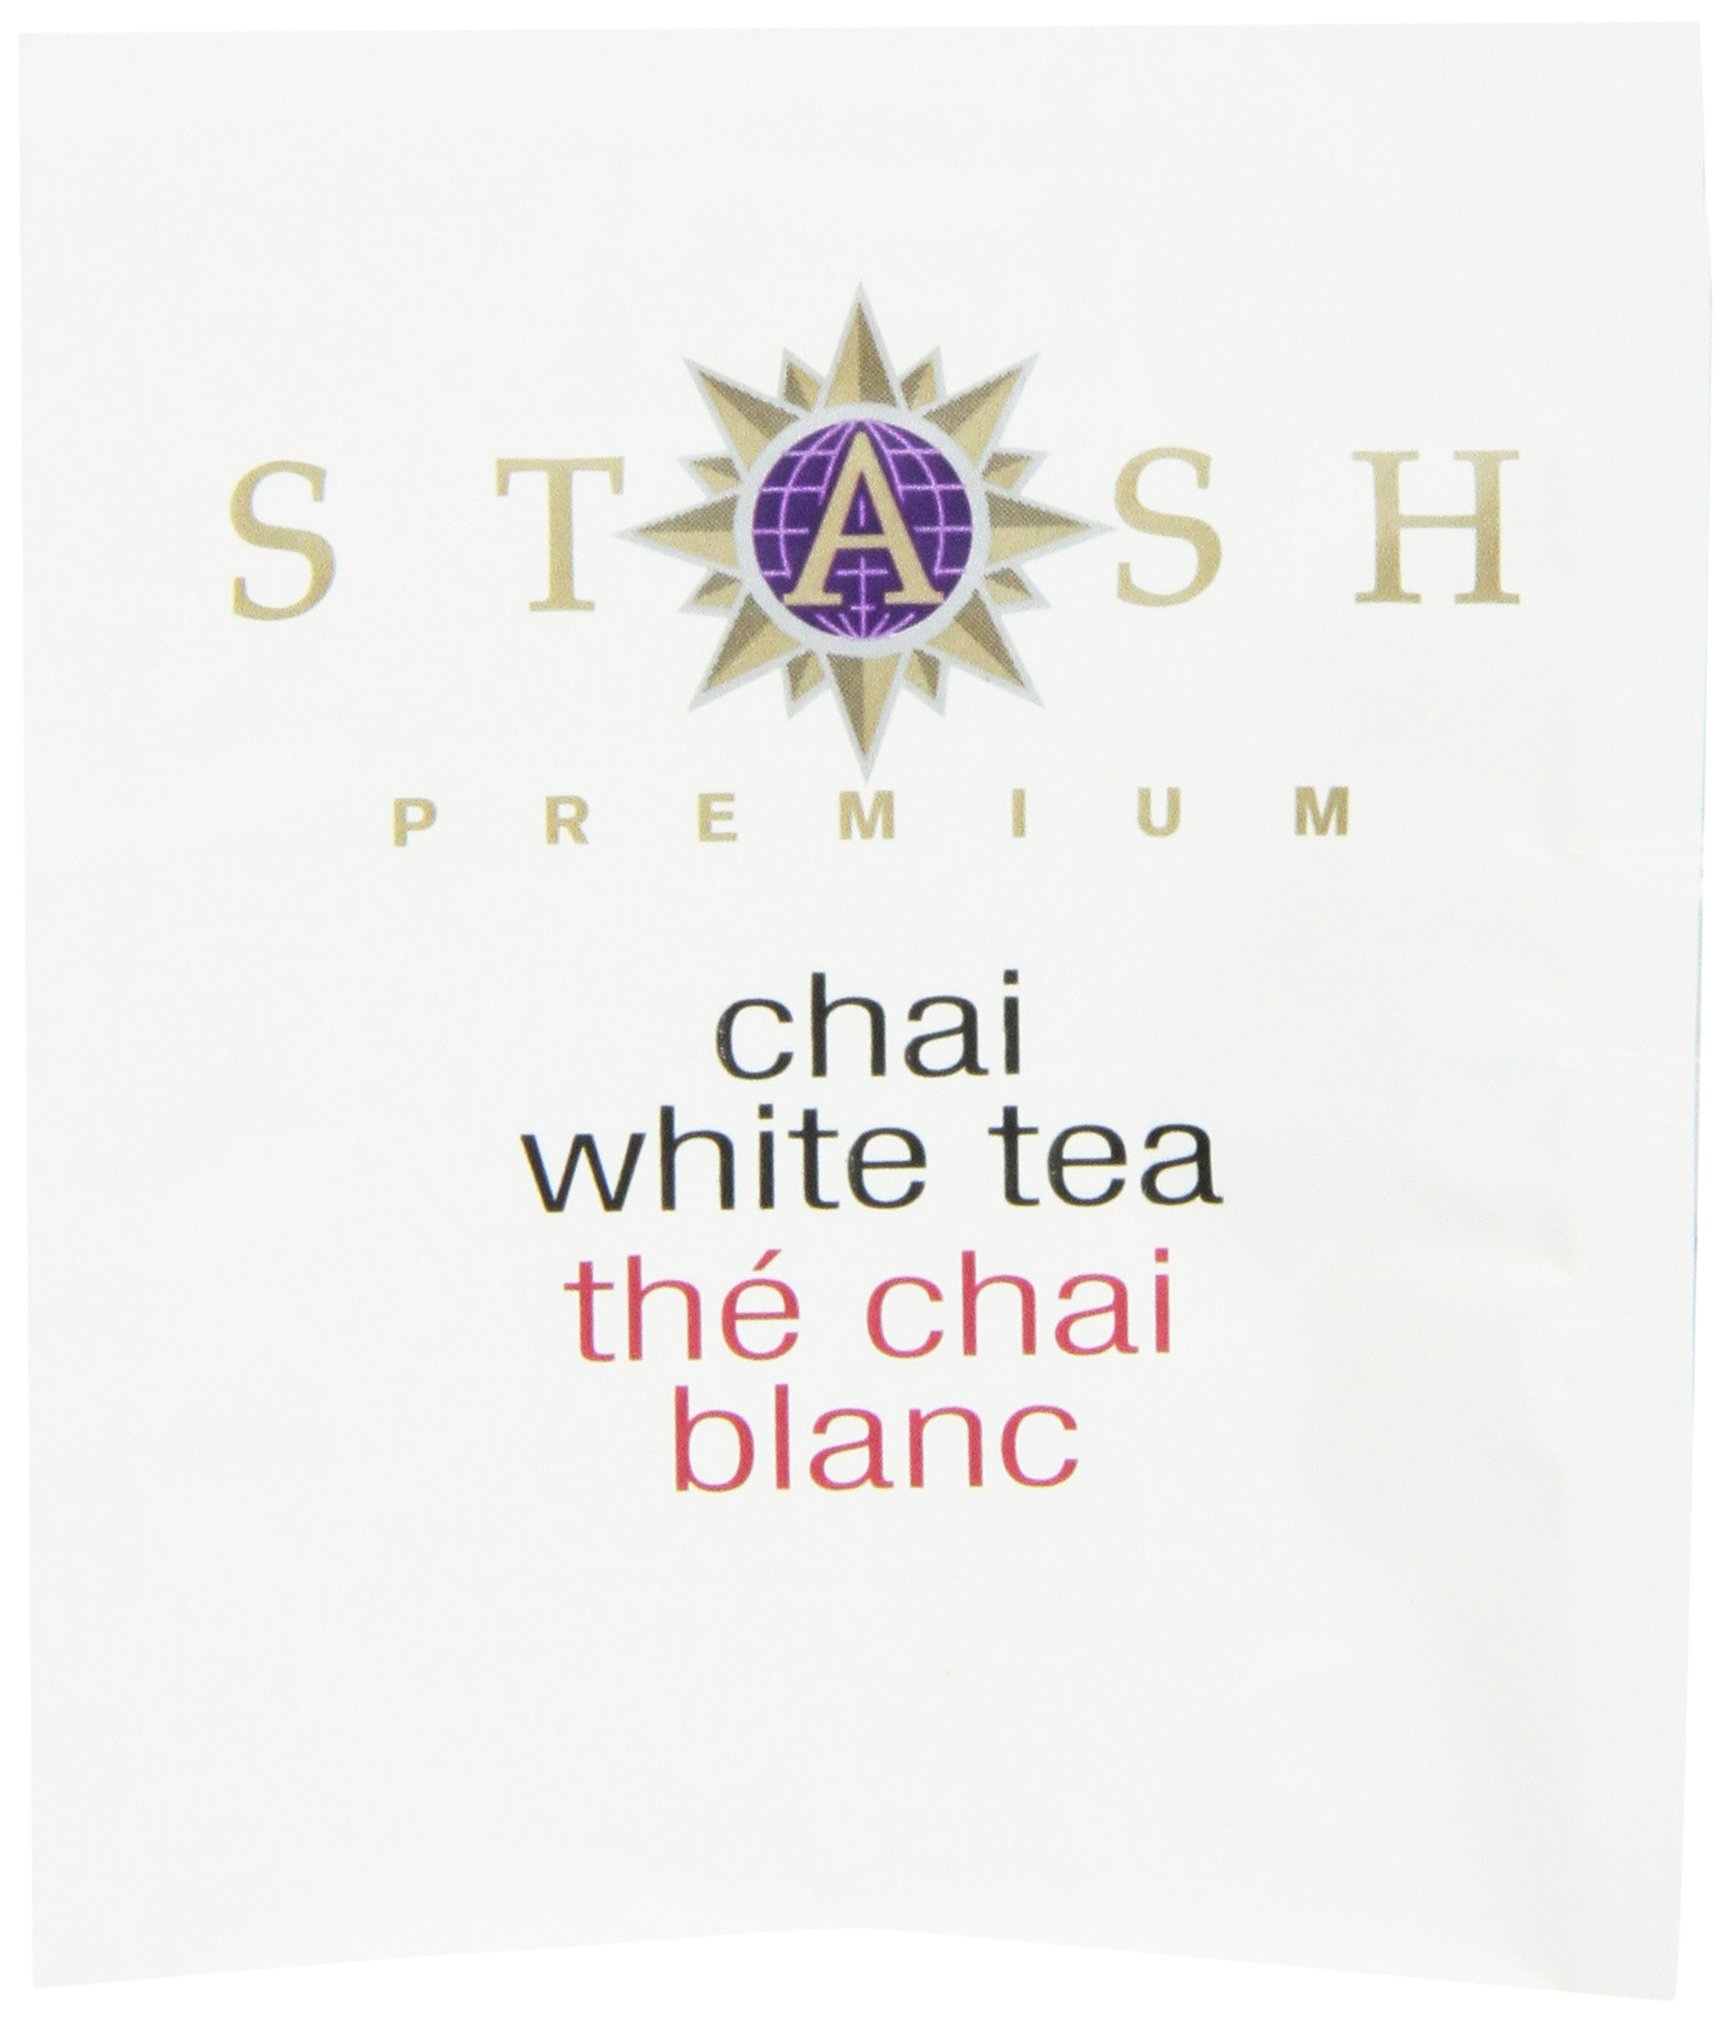 Stash Tea White Chai Tea 10 Count Tea Bags in Foil (Pack of 12) (packaging may vary) Individual Spiced White Tea Bags for Use in Teapots Mugs or Cups, Brew Hot Tea or Iced Tea